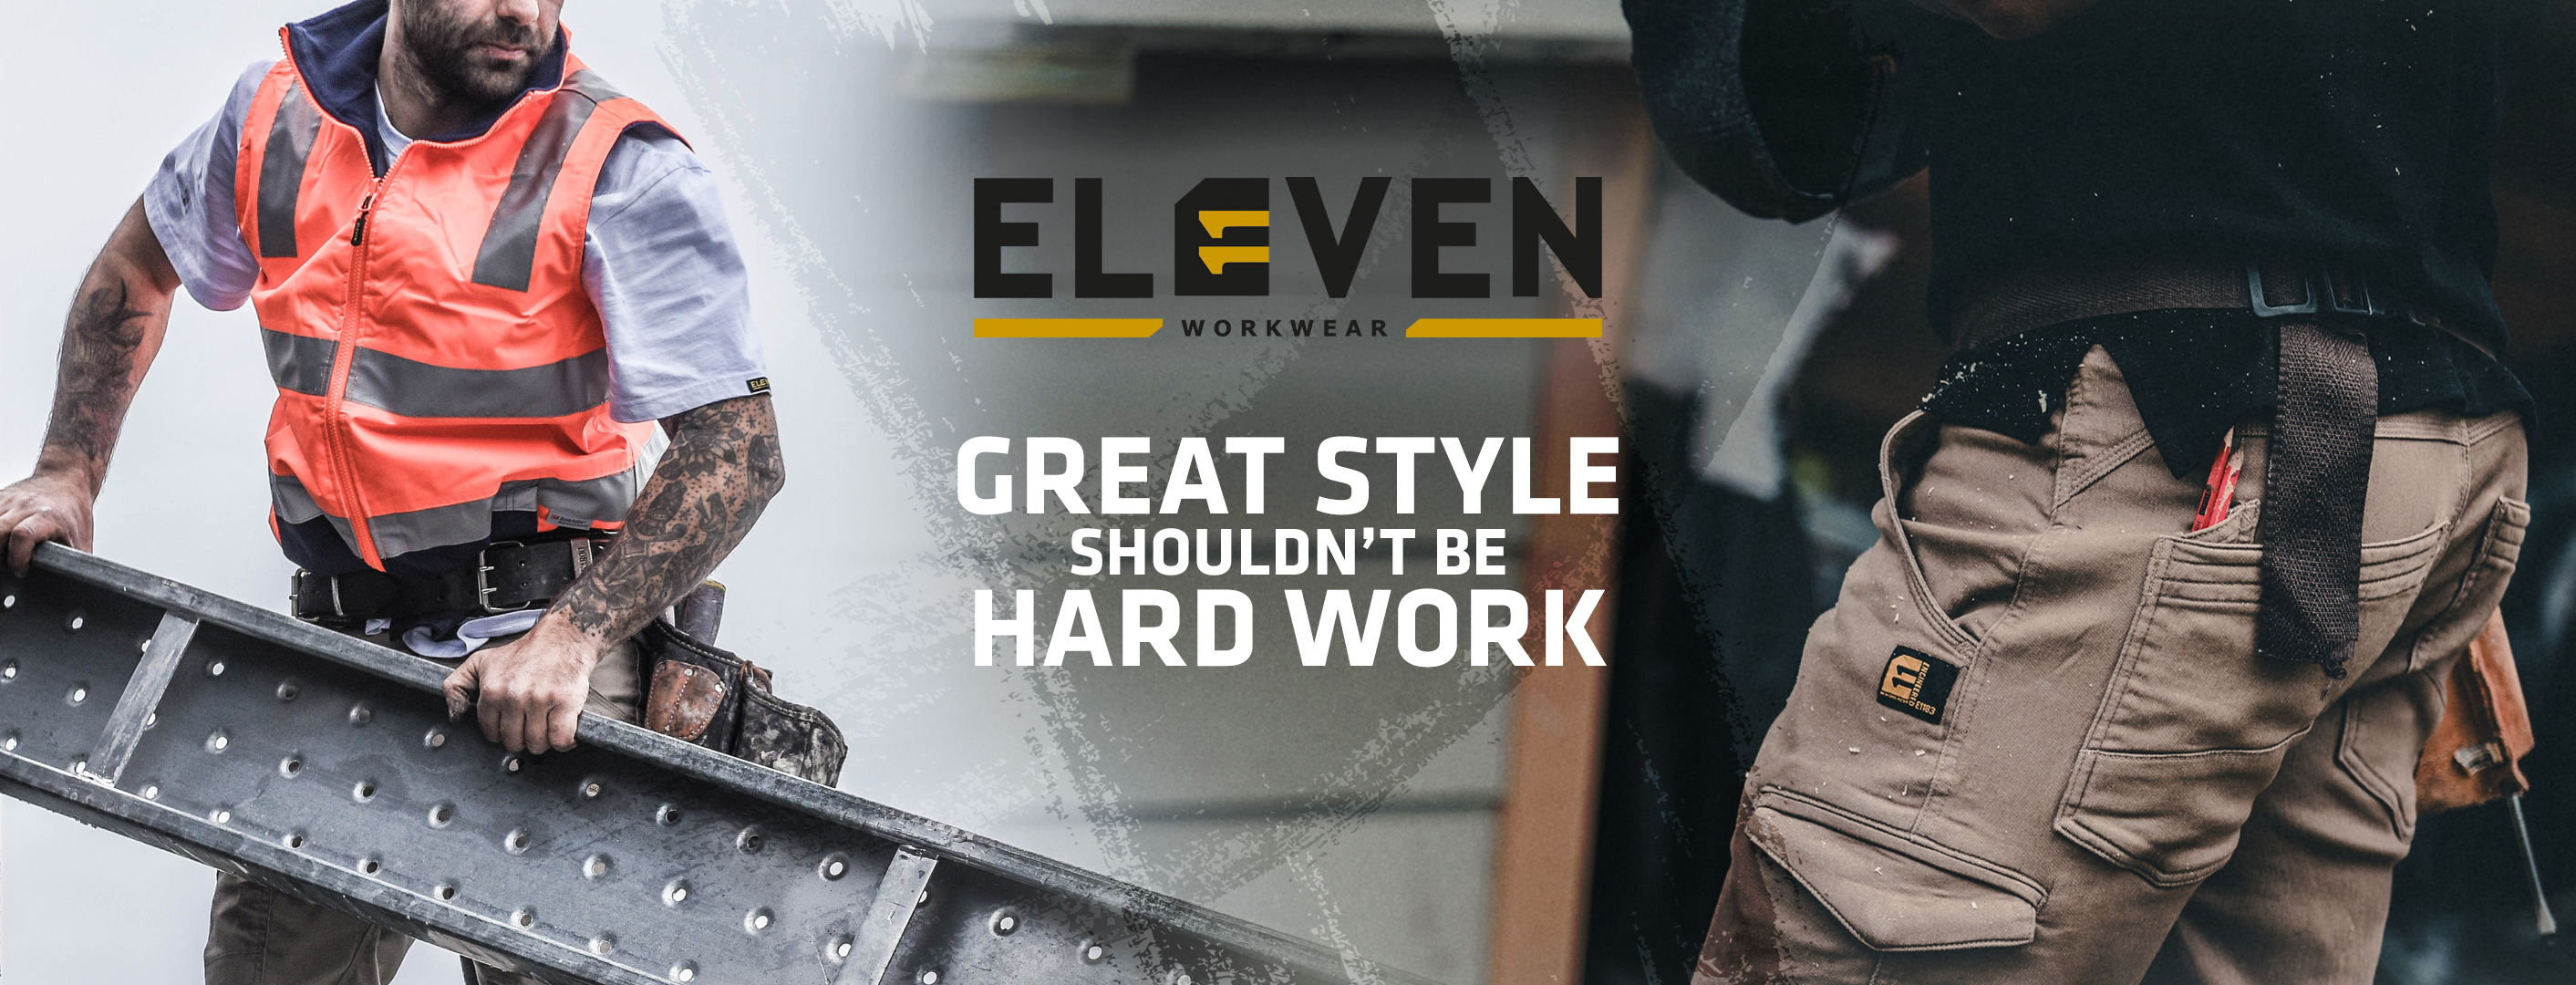 ELEVEN Workwear at RSEA Safety NZ - The Safety Experts